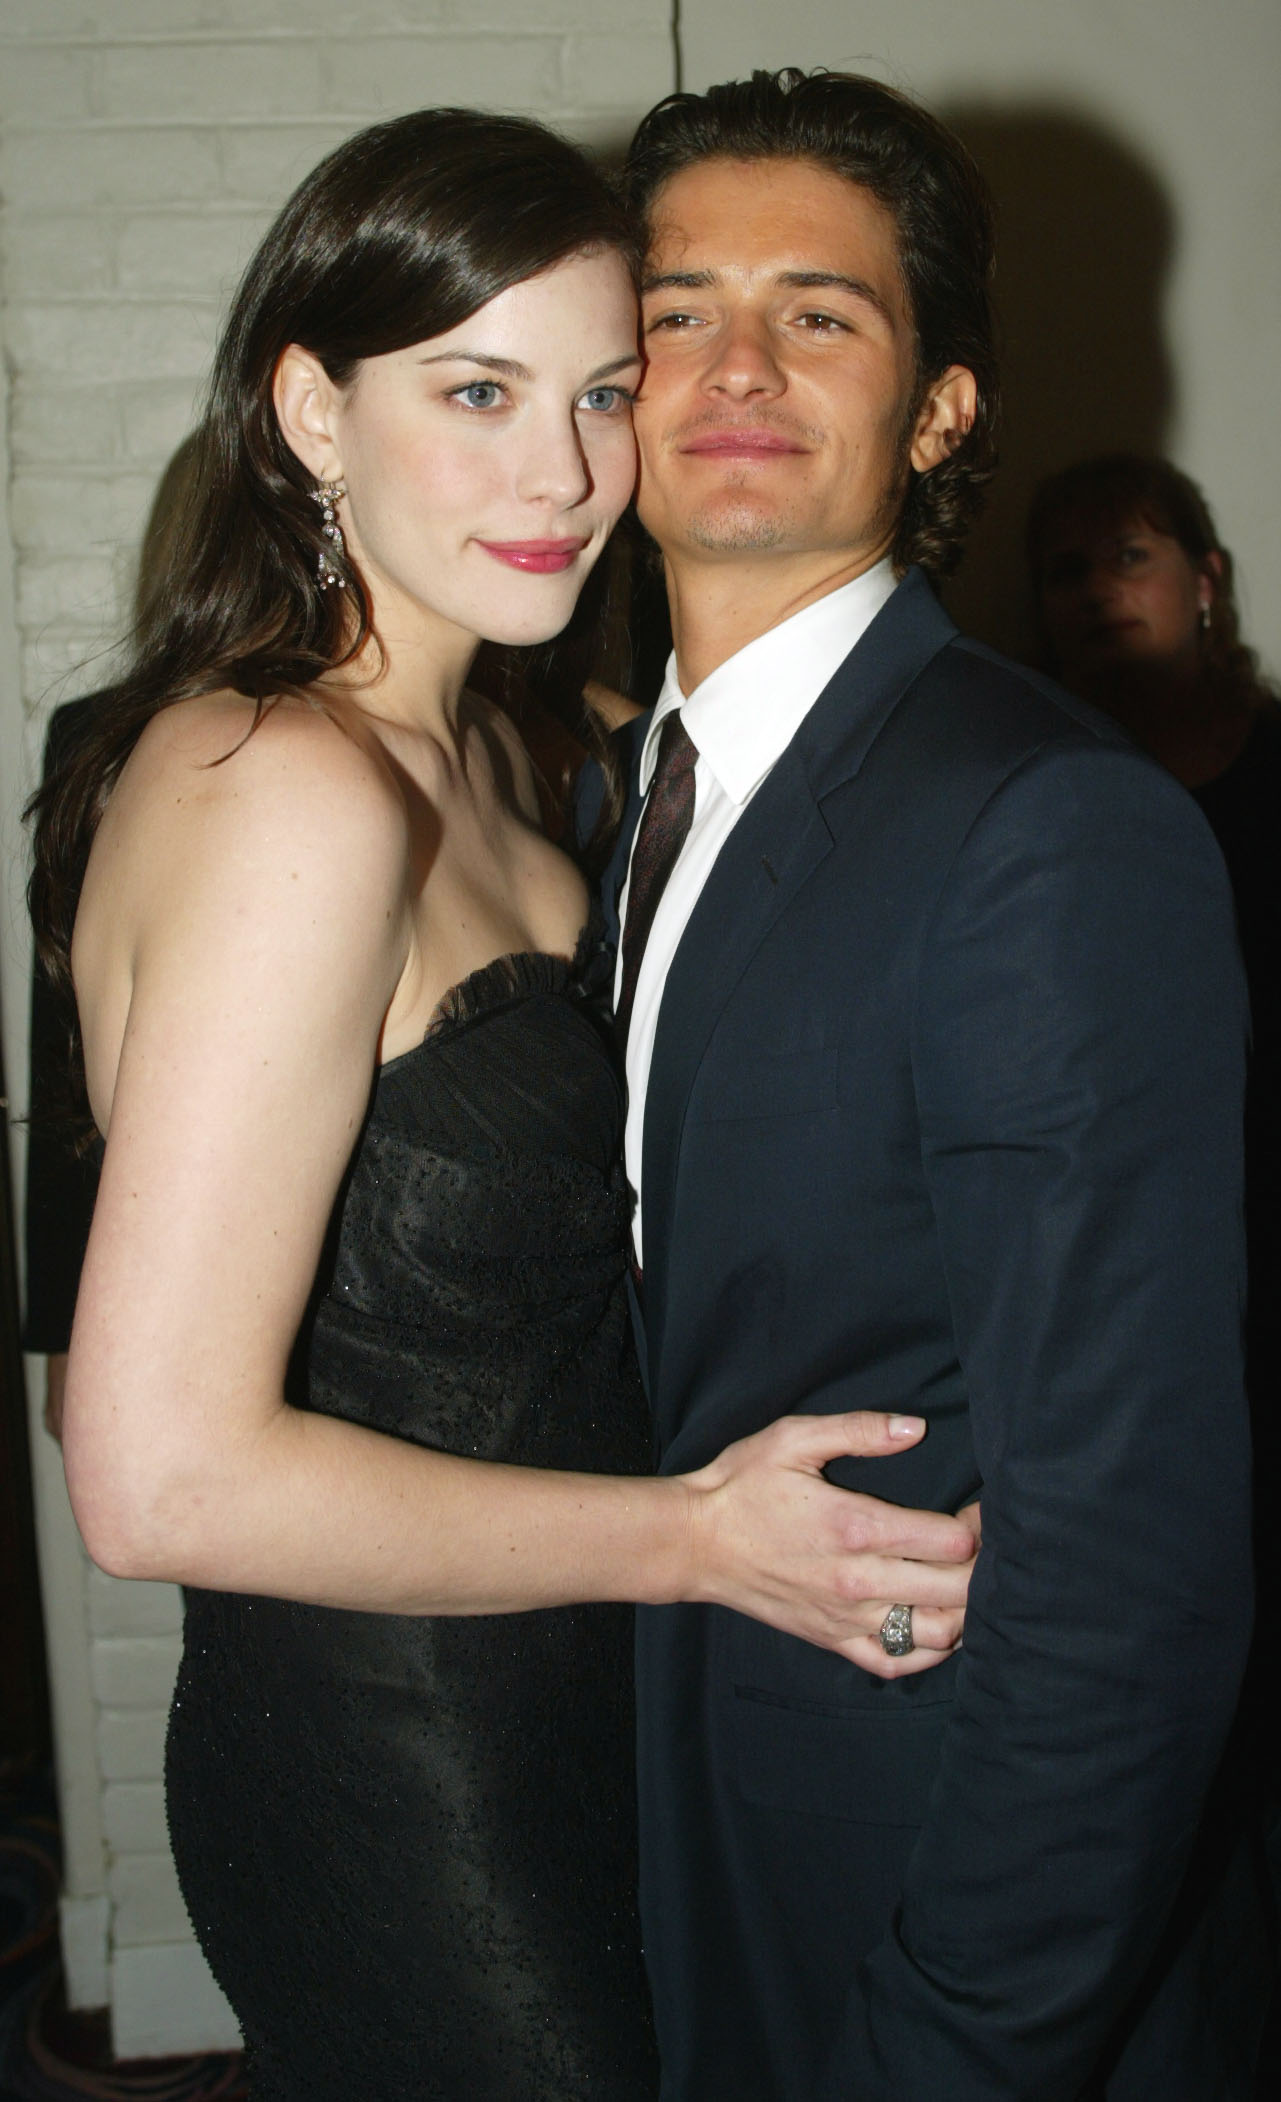 Orlando Bloom spotted getting close to former Lord Of The Rings co-star Liv Tyler following split from wife Miranda Kerr